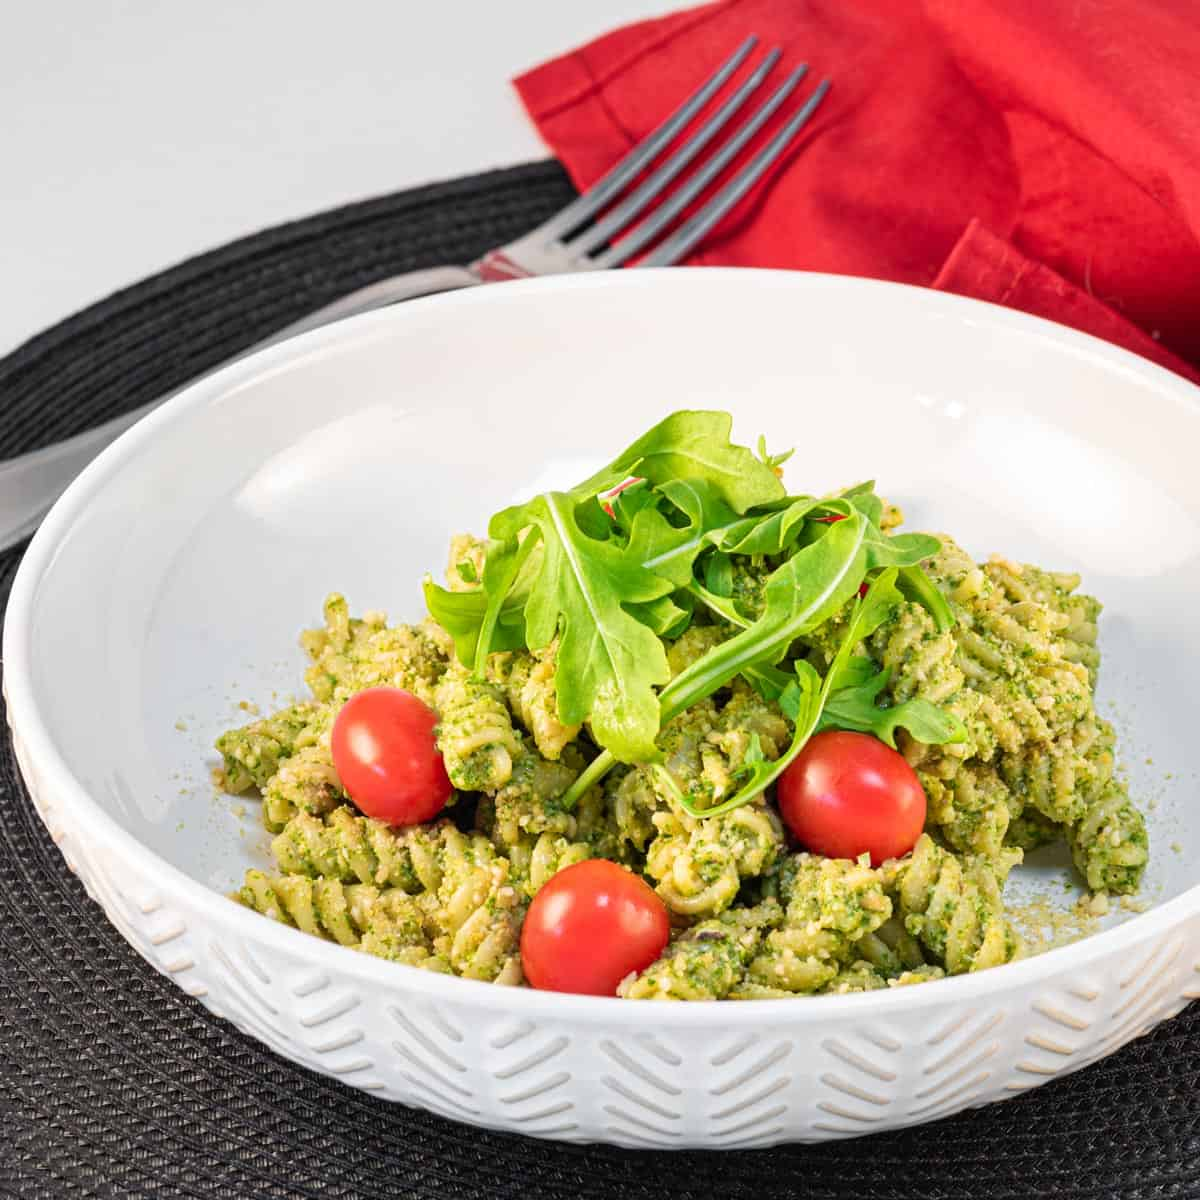 Bowl of vegan pesto pasta topped with arugula and tomatoes.